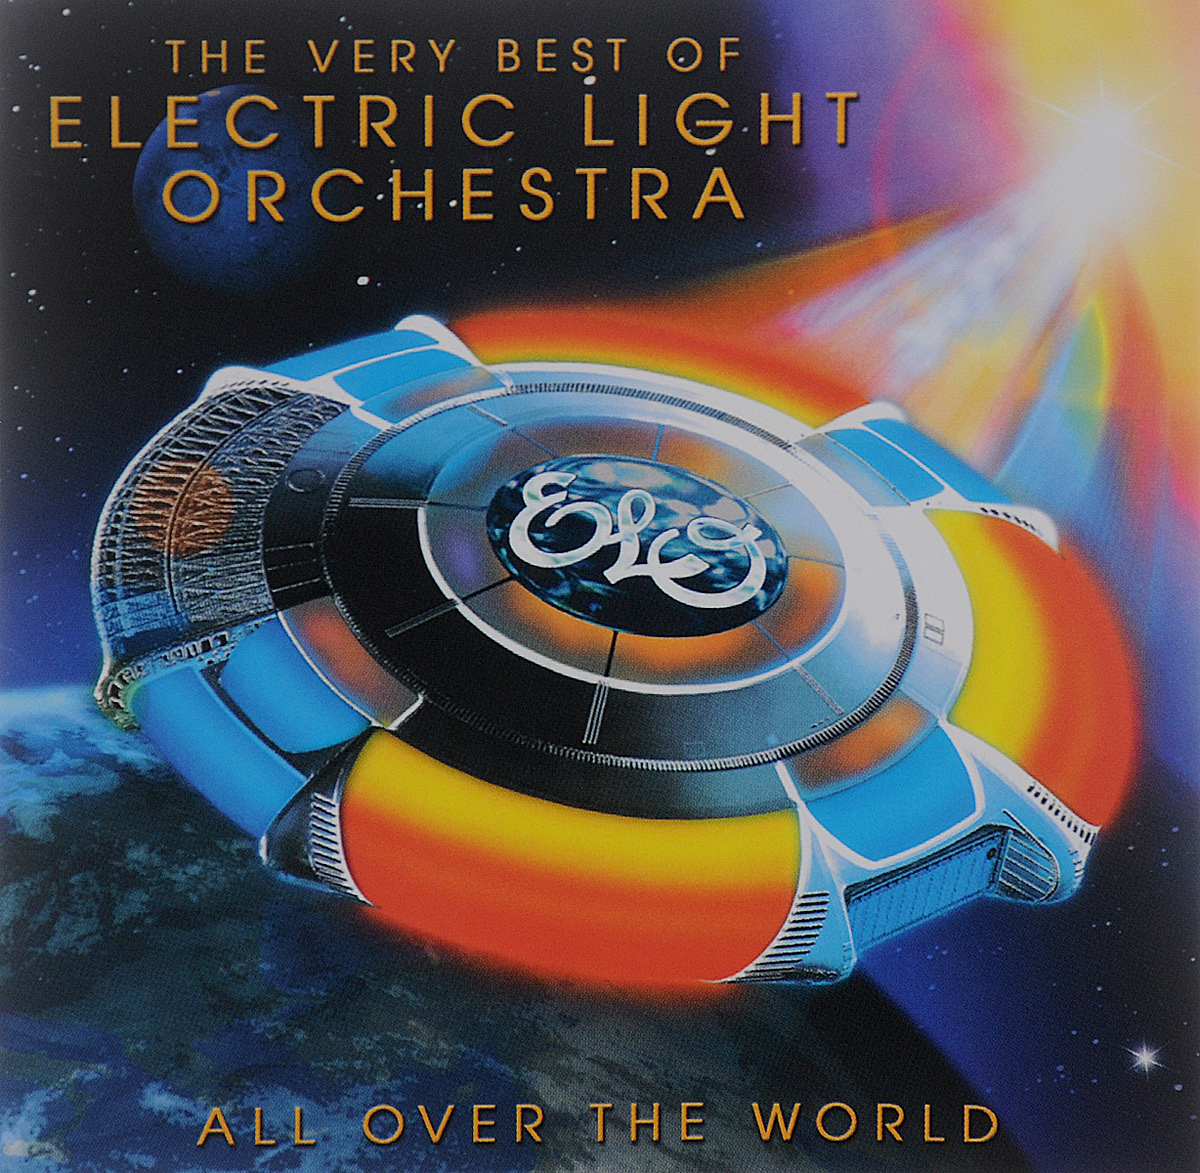 Electric Light Orchestra Electric Light Orchestra. All Over The World. The Very Best Of Electric Light Orchestra electric light orchestra – a new world record lp